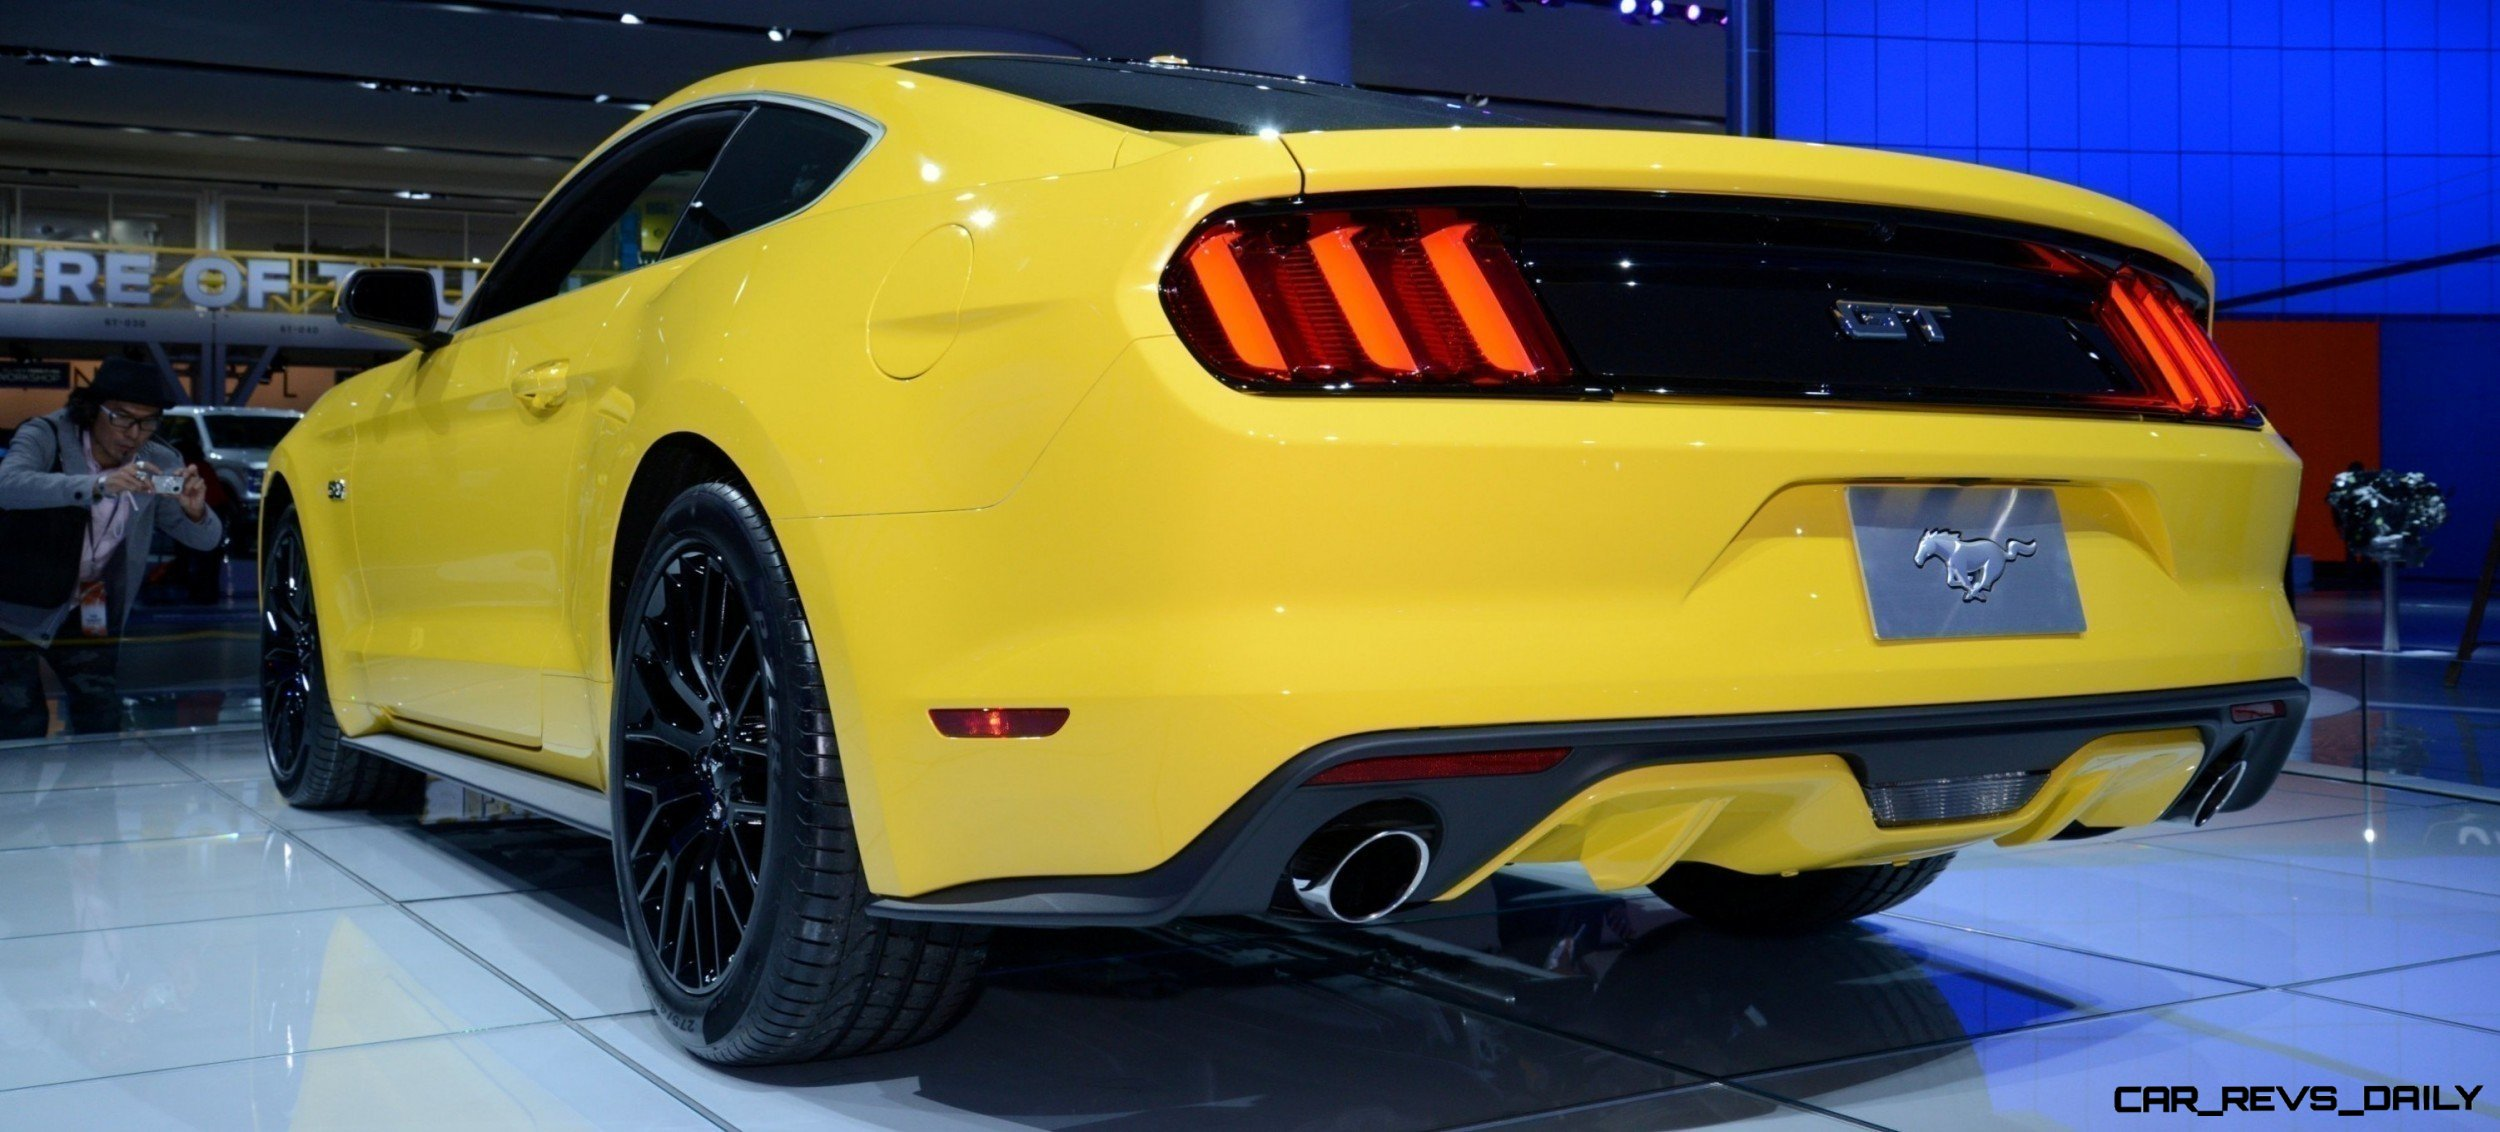 2015 Ford Mustang GT Mean Lean and Ready To Brawl in Latest Real Life Photos Yellow GT 14 photo